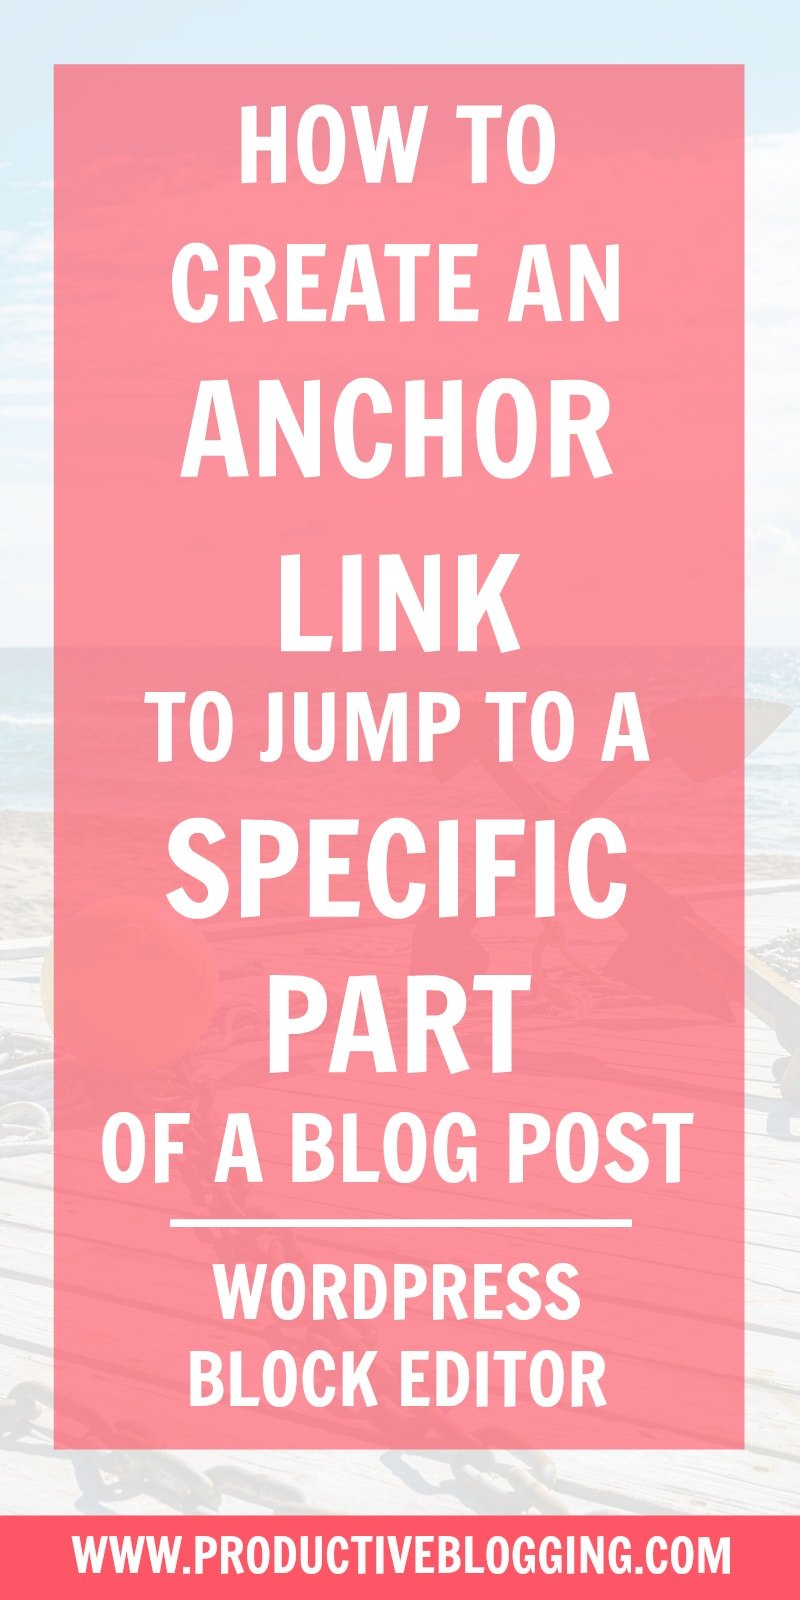 Want to create a link in a blog post that will allow your reader to 'jump' to a specific part of your blog post? It's really easy to do with the WordPress Block Editor. Here's how… #anchorlink #jumplink #linkjump #wordpress #wordpressblockeditor #gutenberg #wordpressgutenberg #blogpostindex #blogpost #bloggingbasics #blogging #bloggers #bloggingtips #productiveblogging #blogsmarternotharder